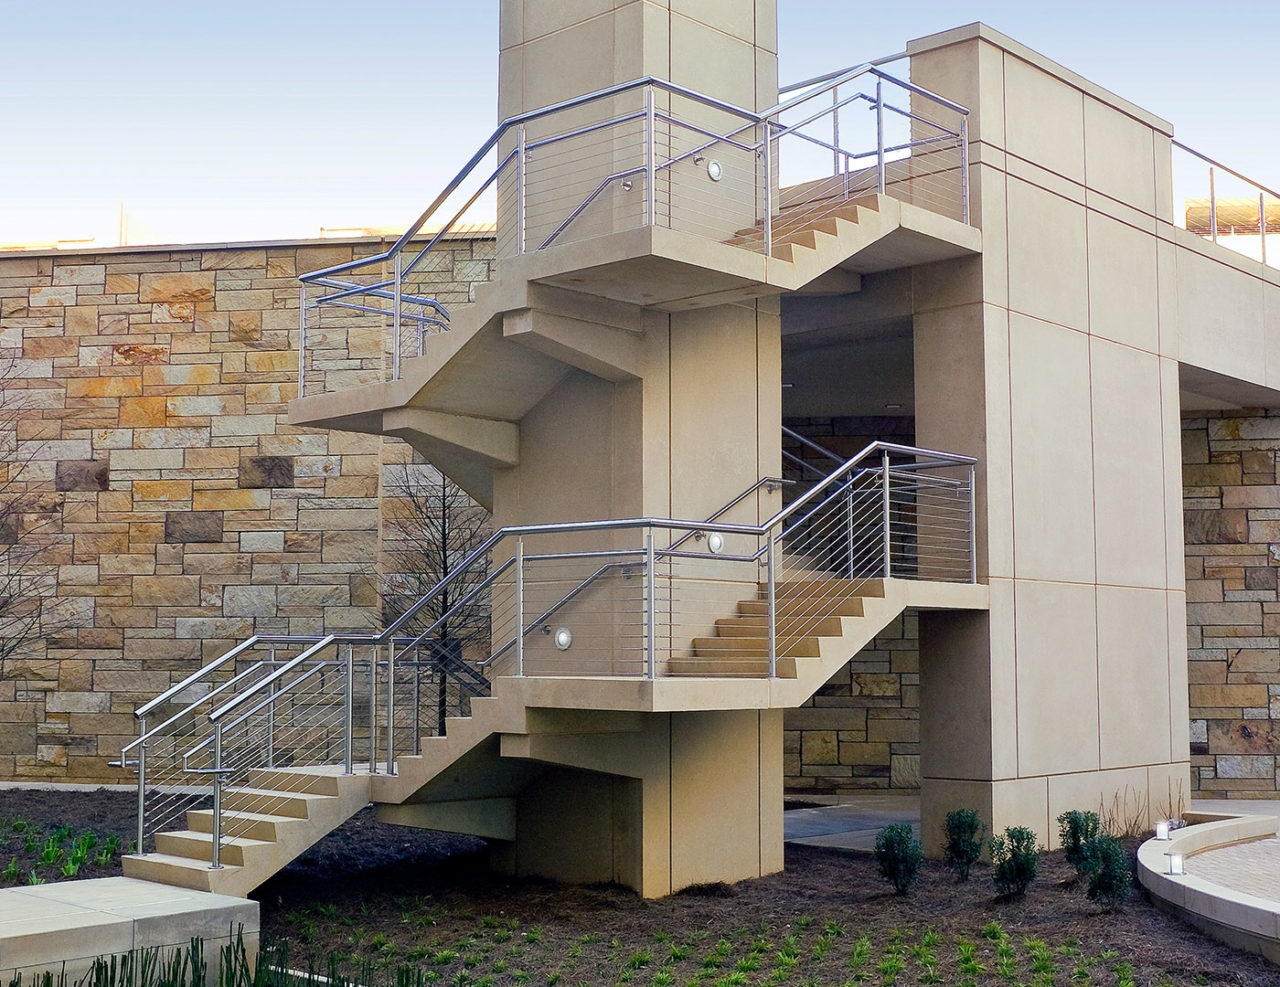 Casino Commercial Cable Railings Trex Commercial Products | Outside Stair Railing Lowes | Wood | Composite Decking | Outdoor Living | Handrail Kit | Stair Parts